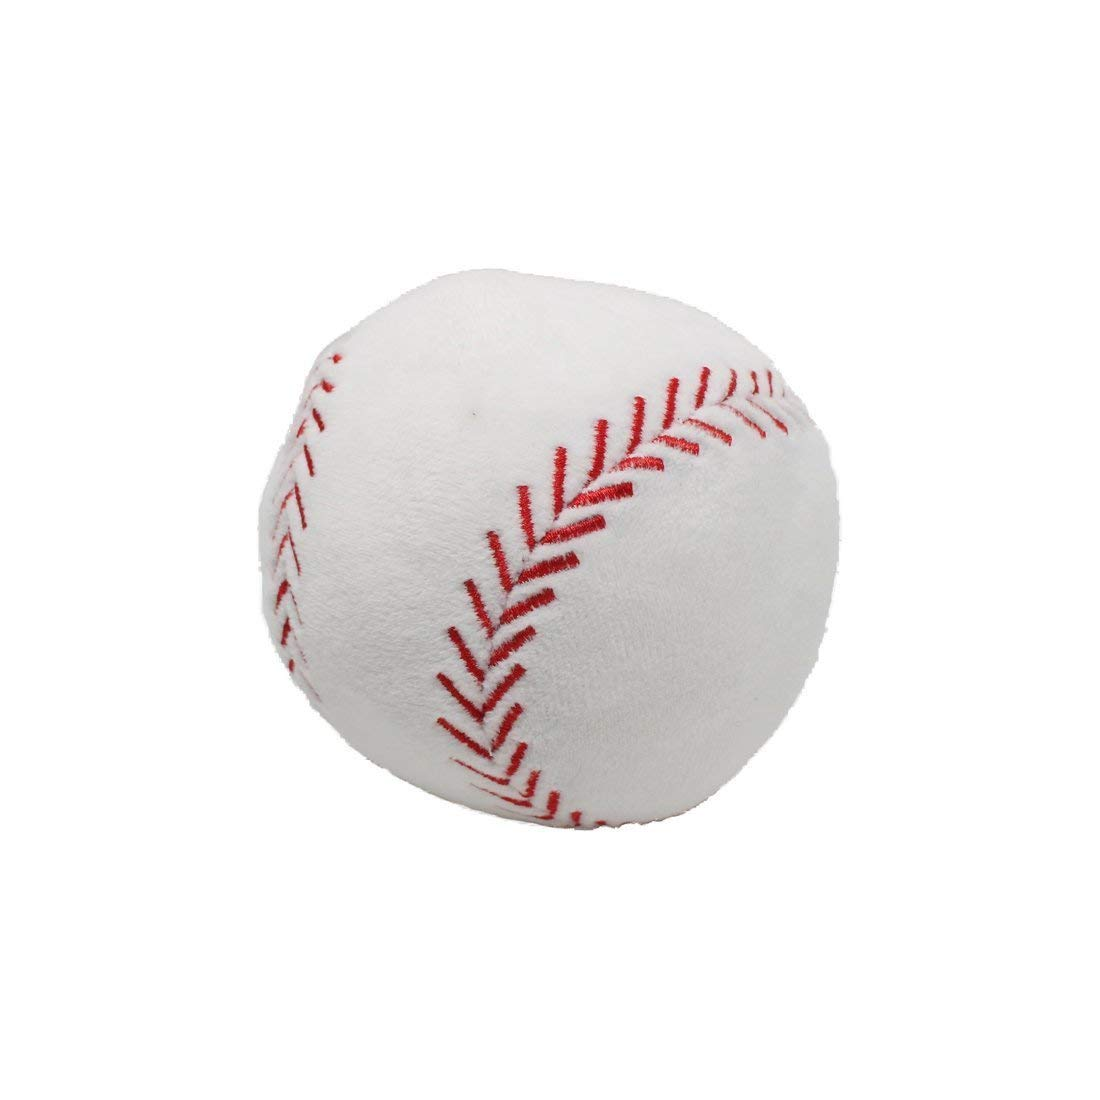 CatchStar Toy Baseball Plush Fluffy Stuffed Sports Ball Soft Durable Sports Toy Gift for Kids White 4""